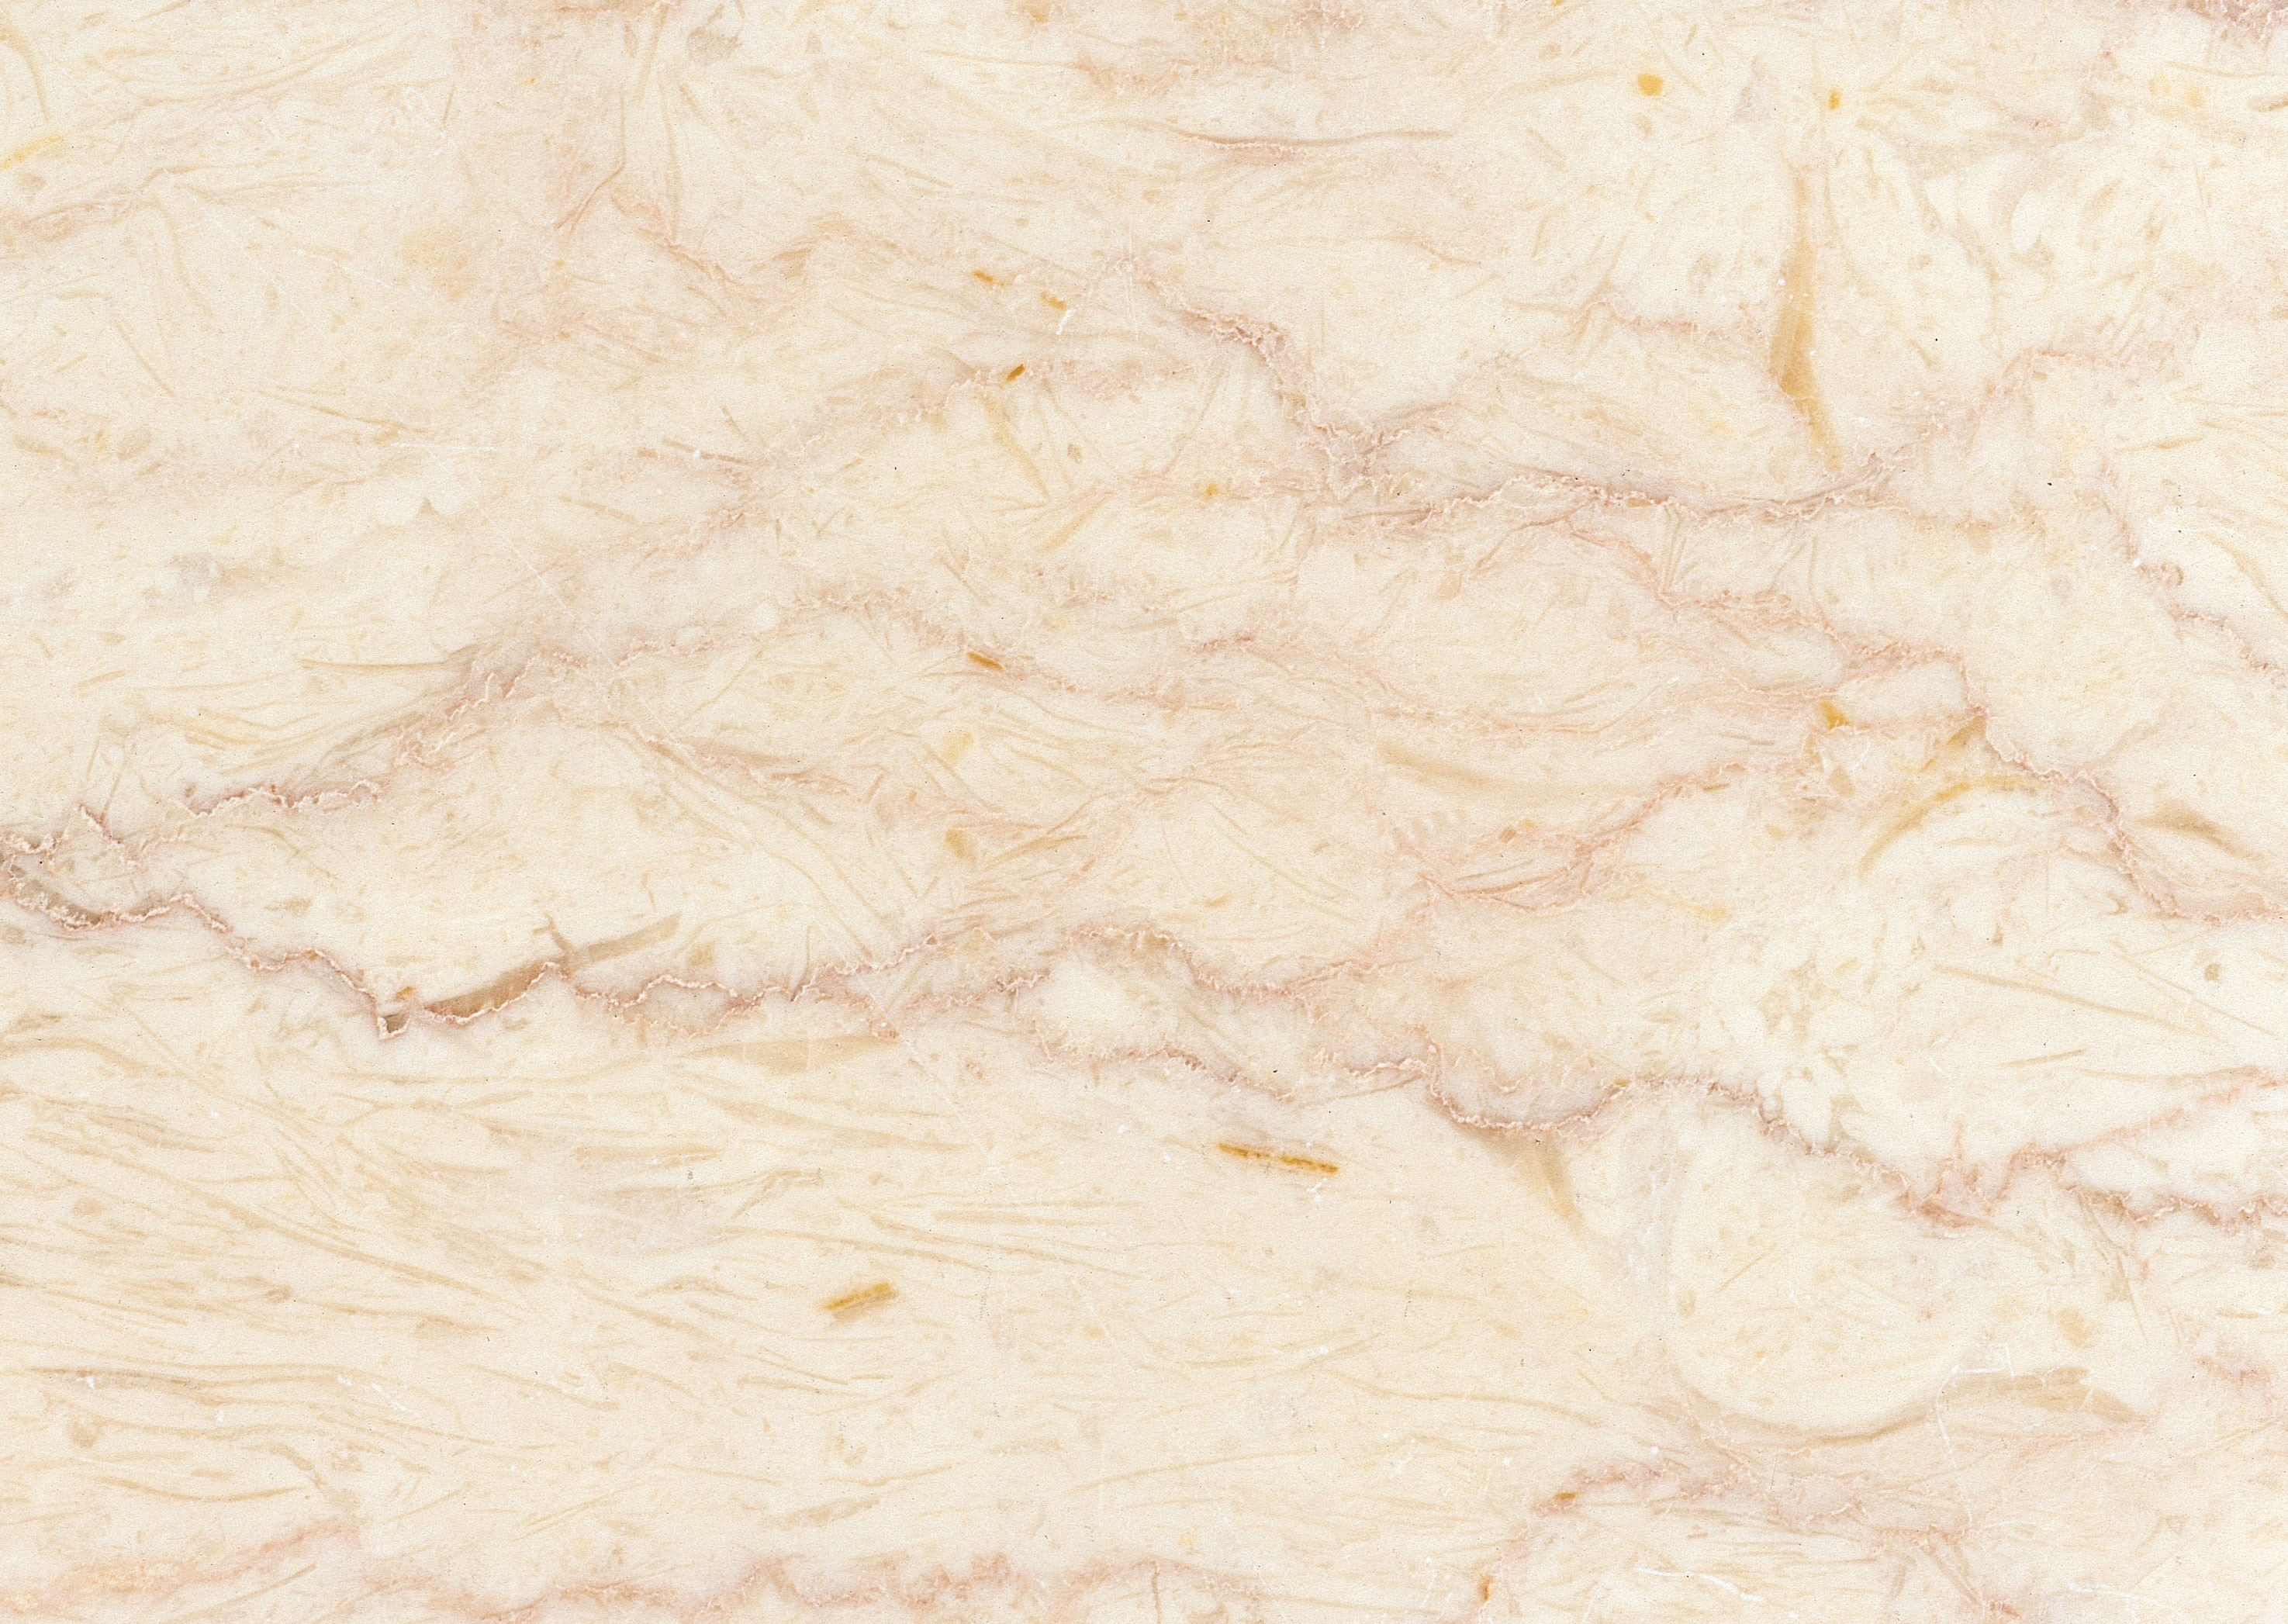 Marble Texture Hd : Marble background ·① download free beautiful hd